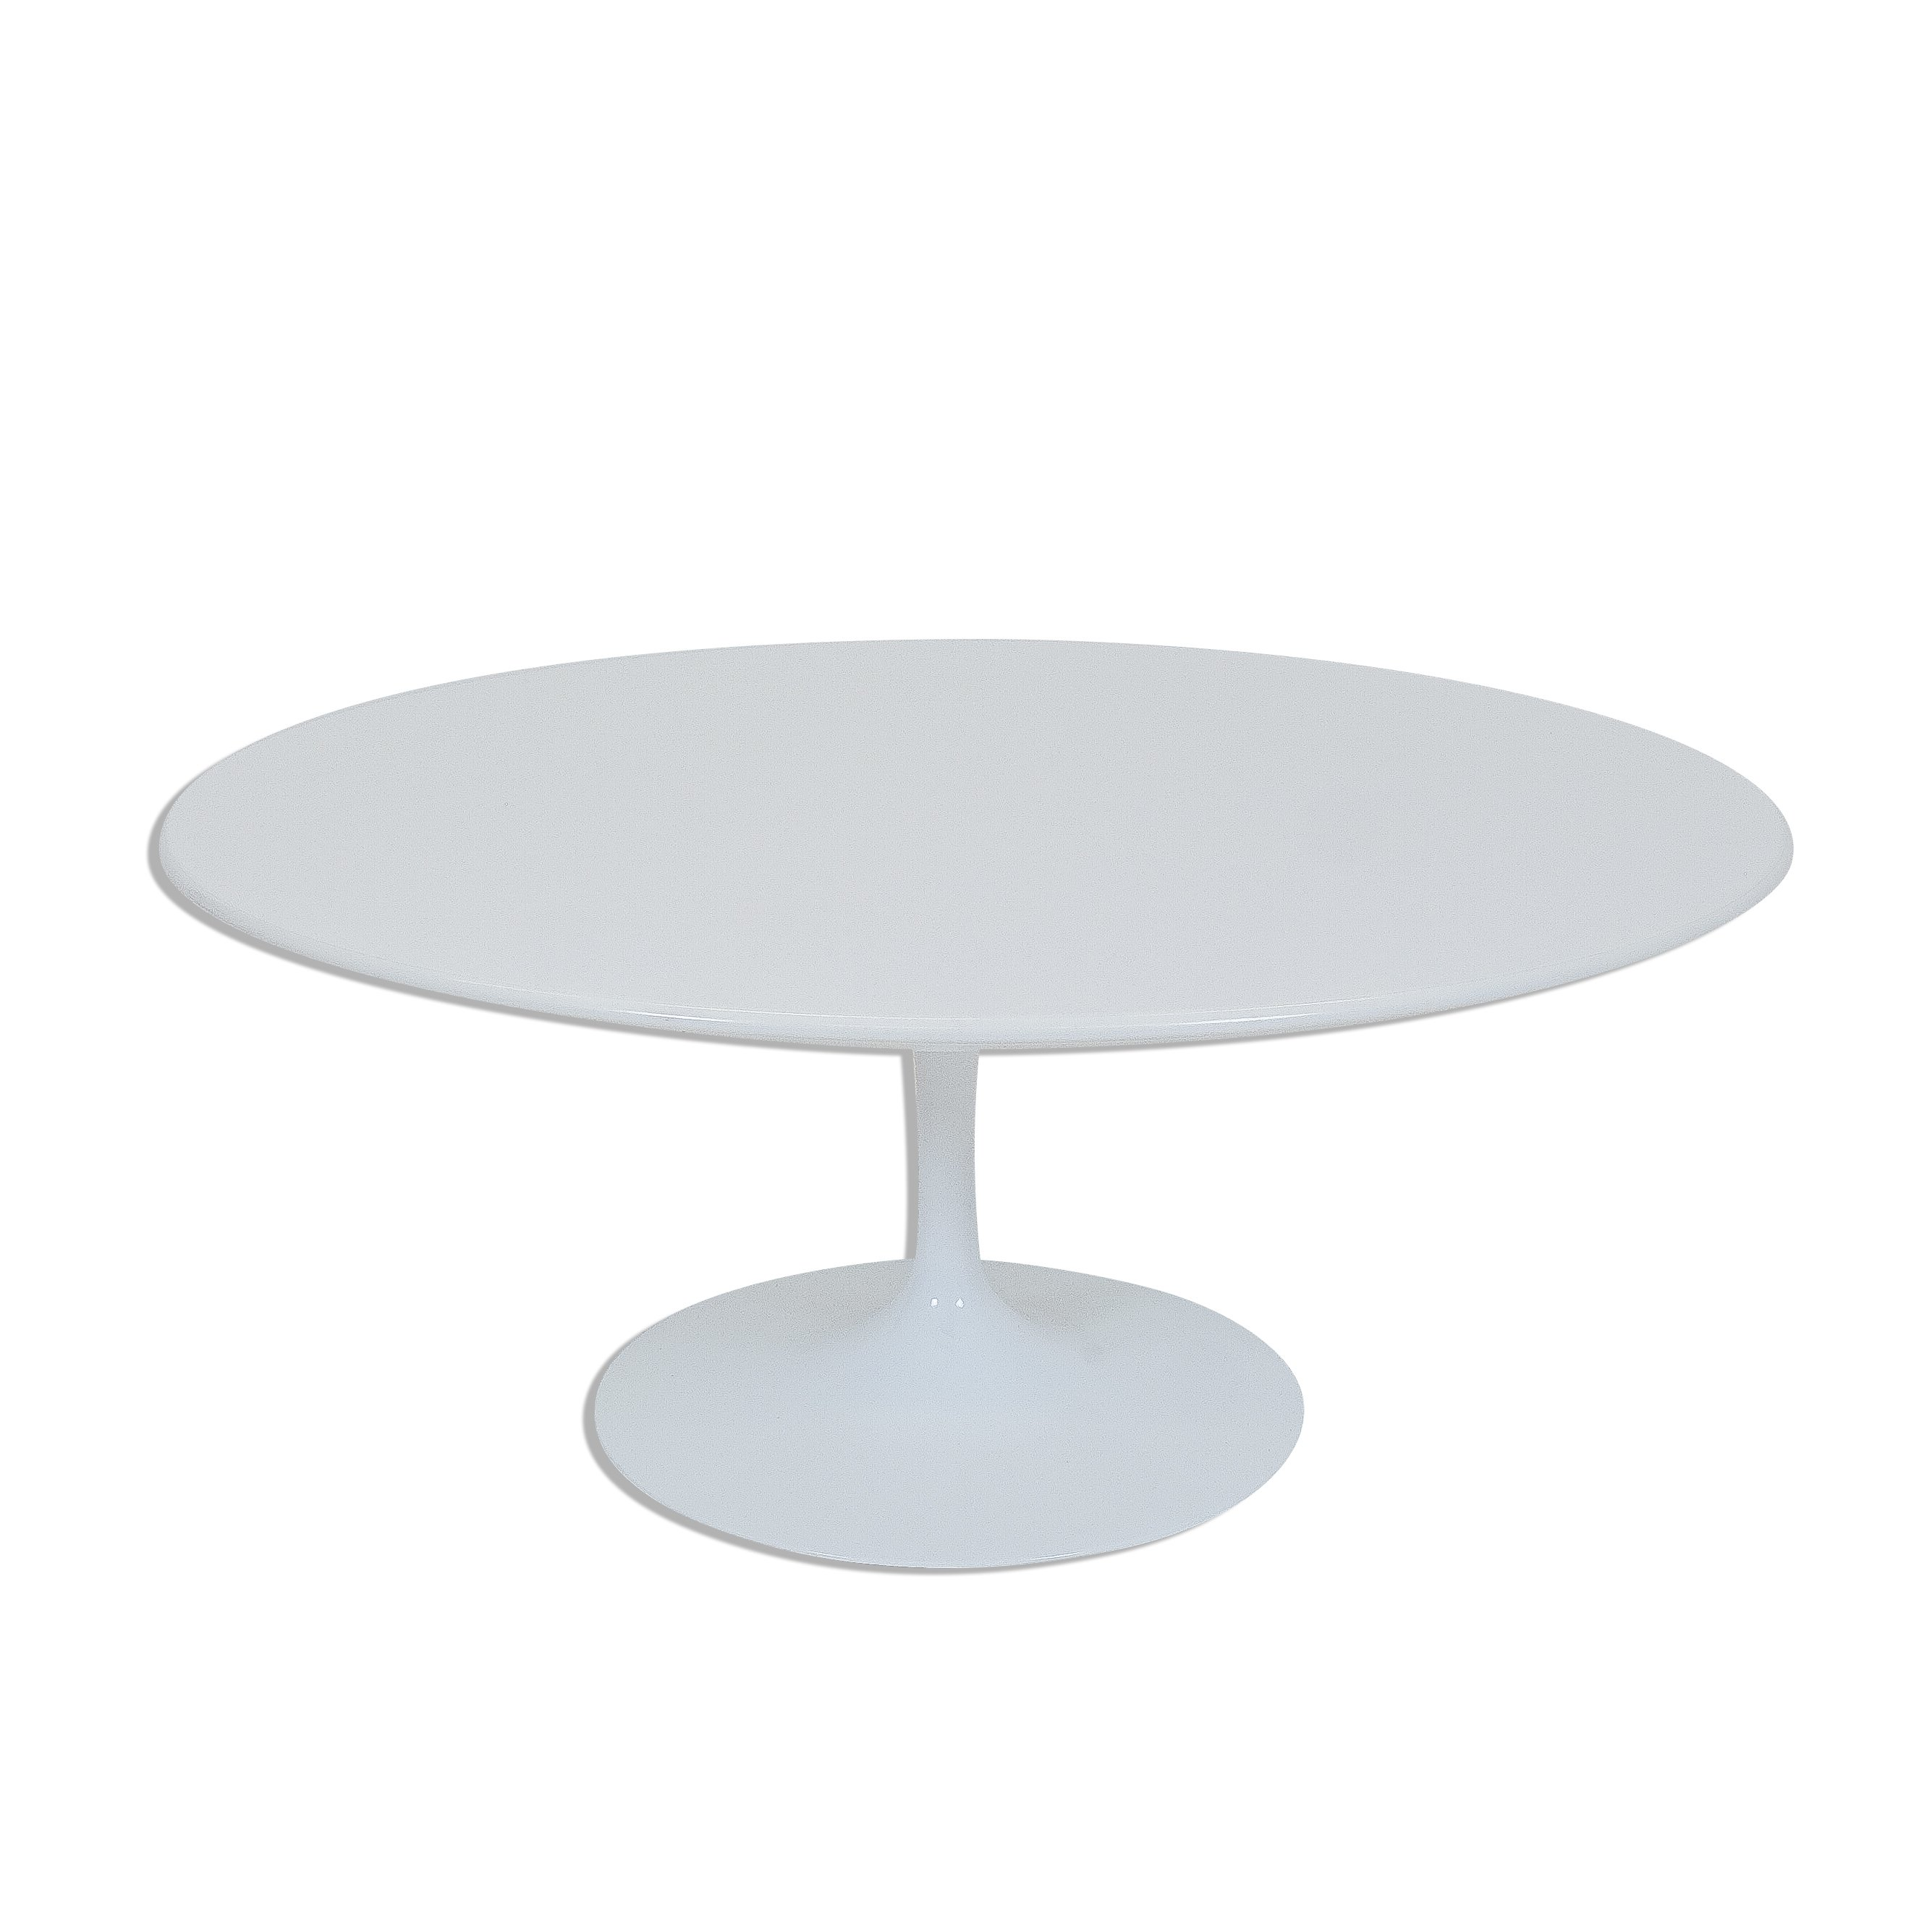 Saarinen Knoll Table Saarinen Round Table By Knoll